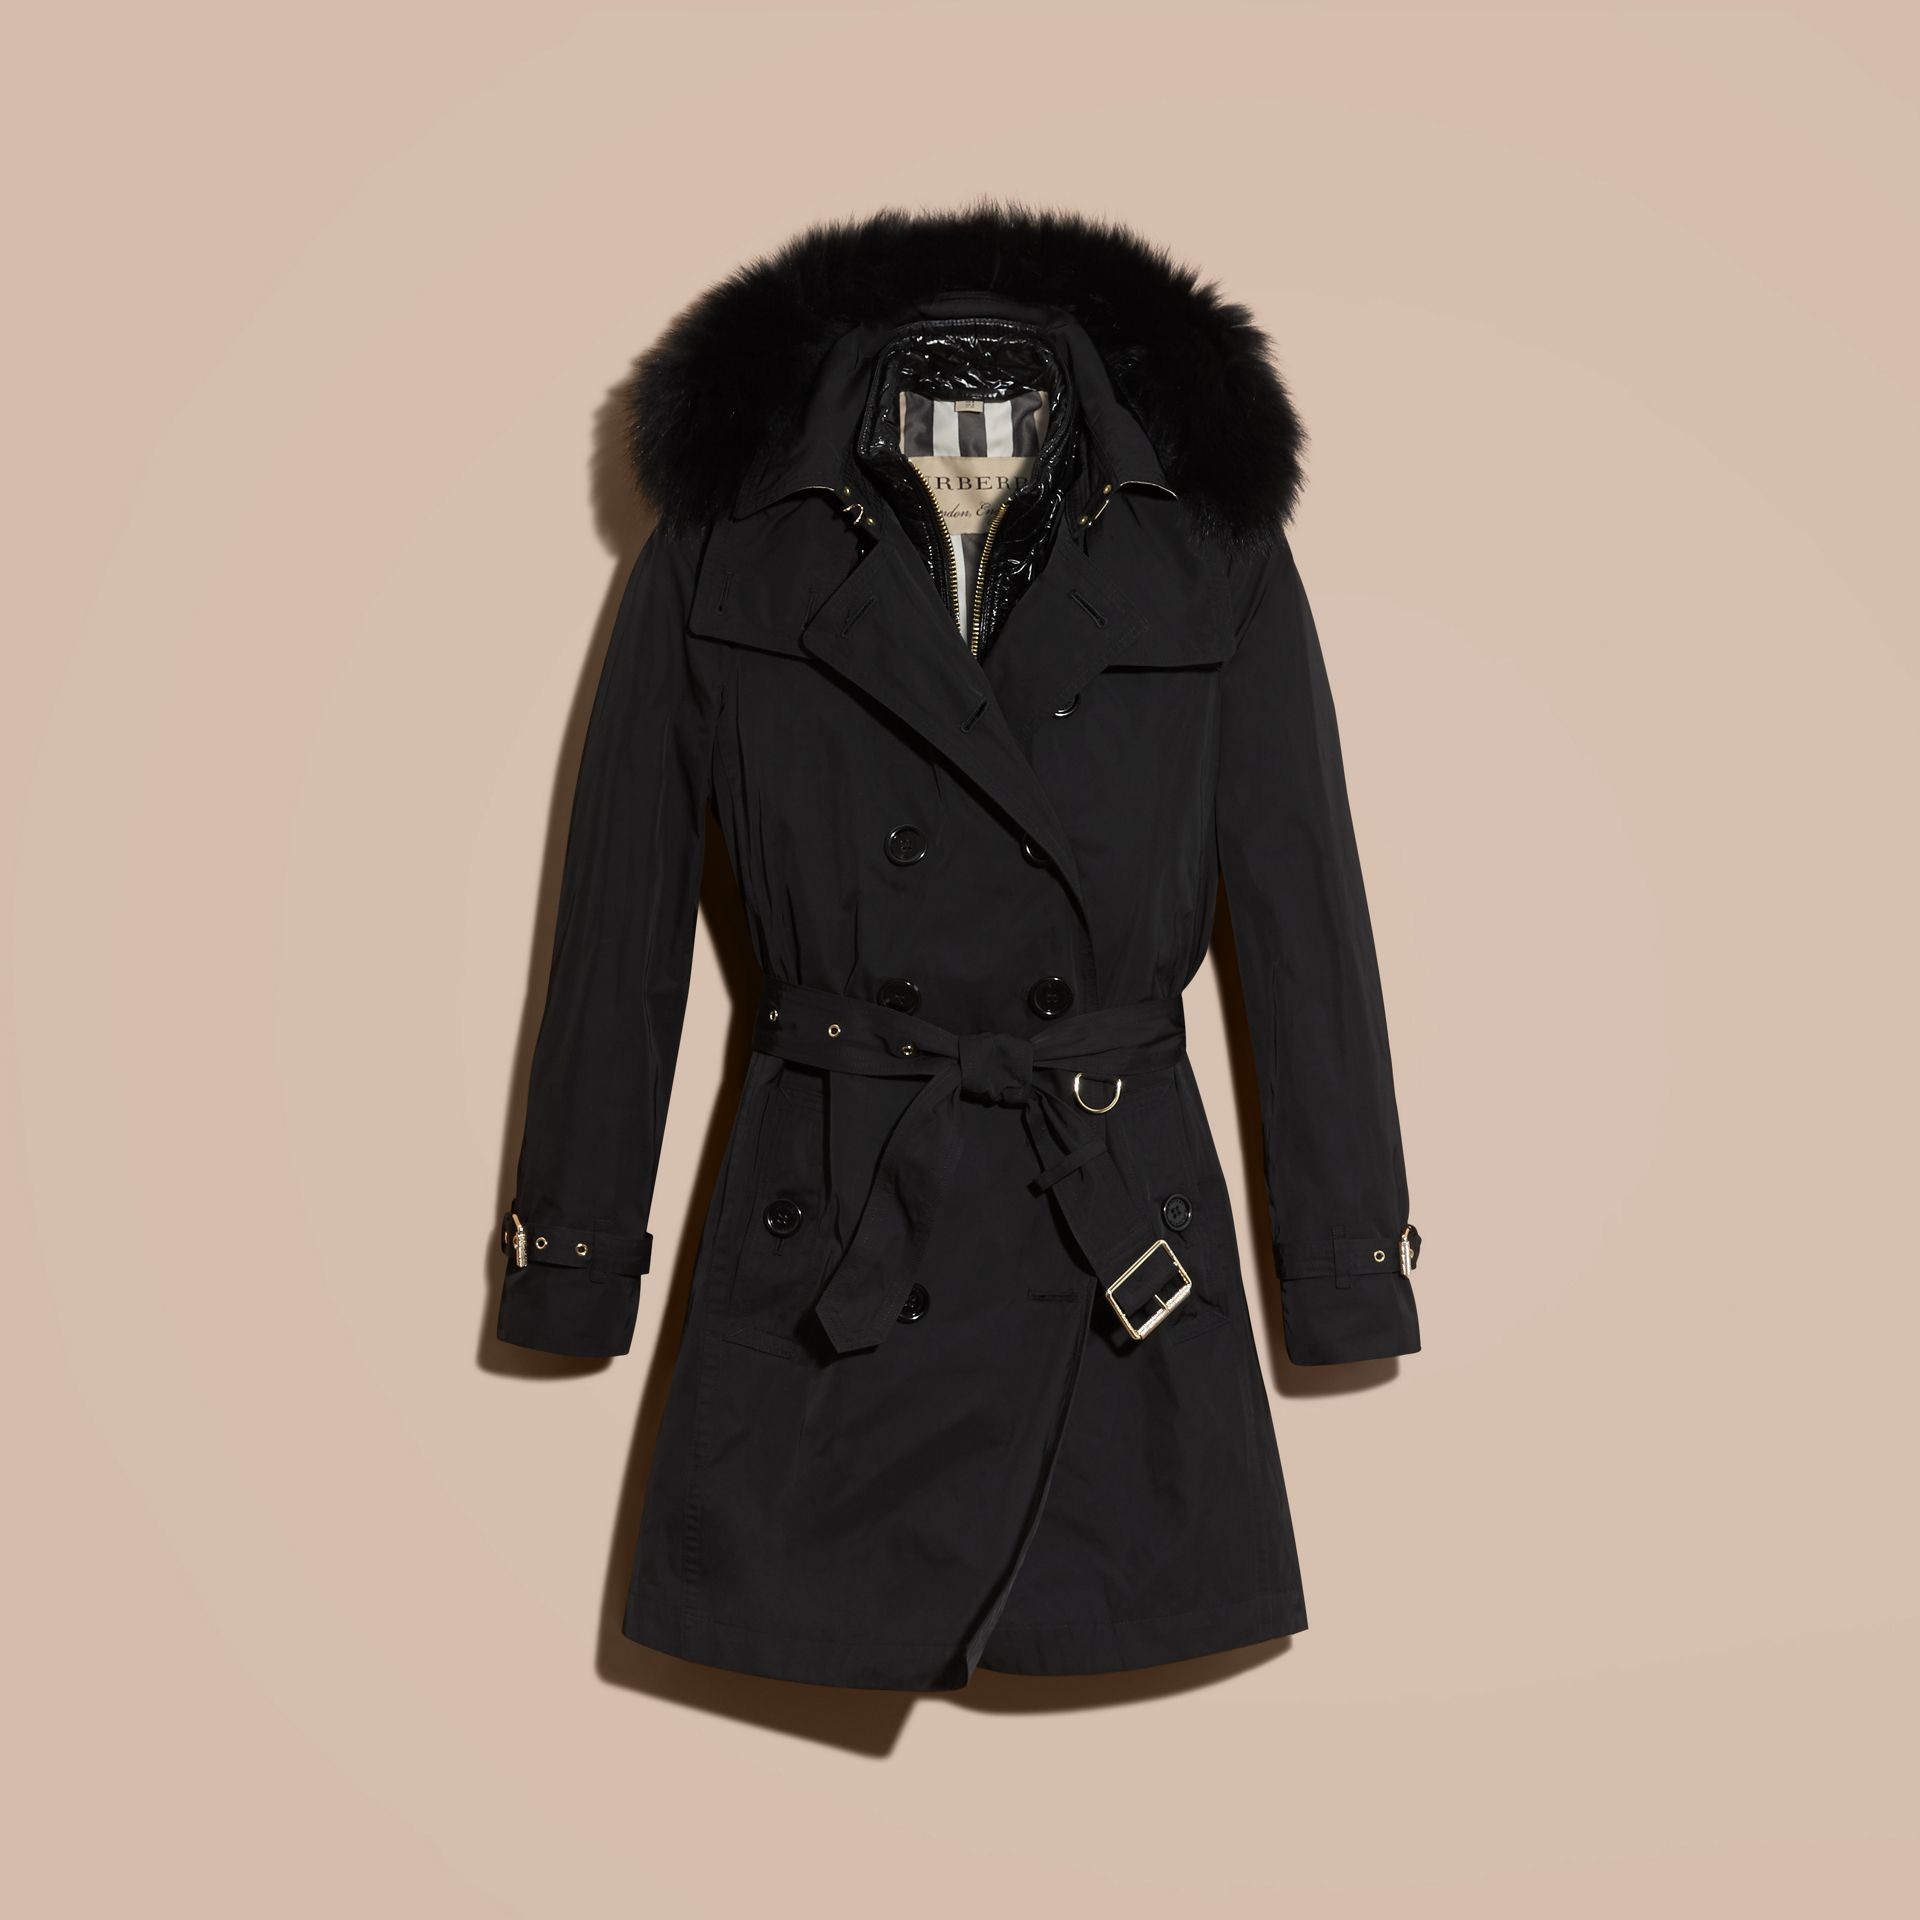 Fur-trimmed Hood Trench Coat with Detachable Gilet Black - gallery image 4